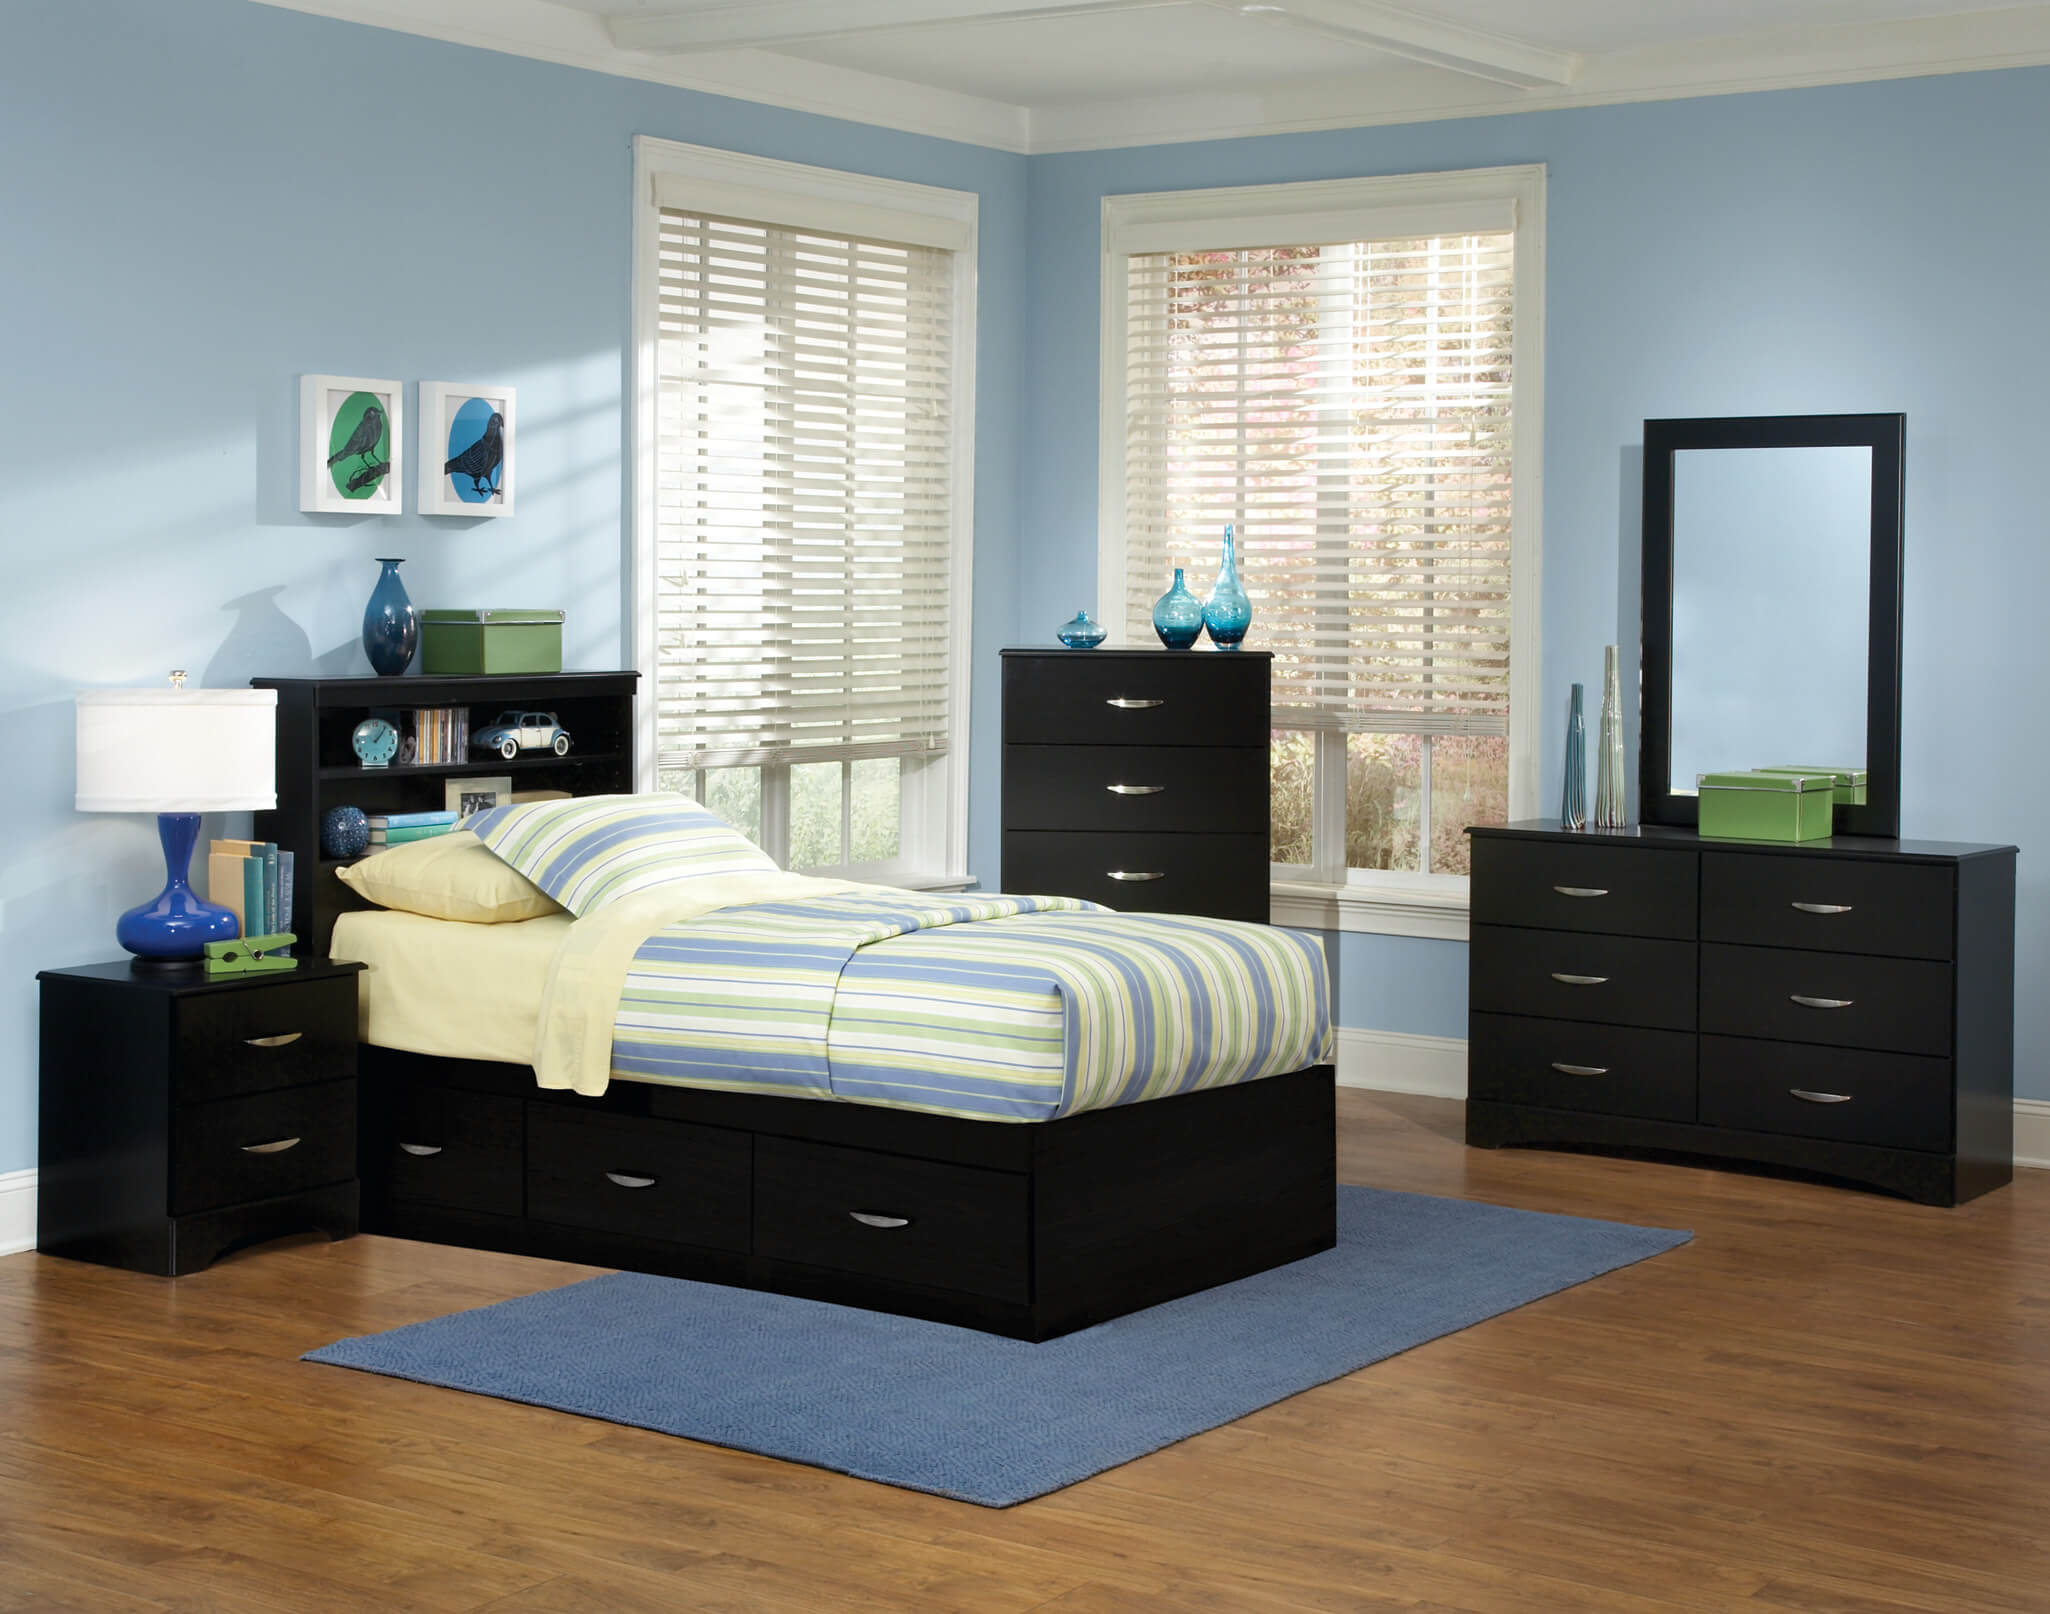 Bedroom Sets Boys jacob twin black storage bedroom set | kids' bedroom sets